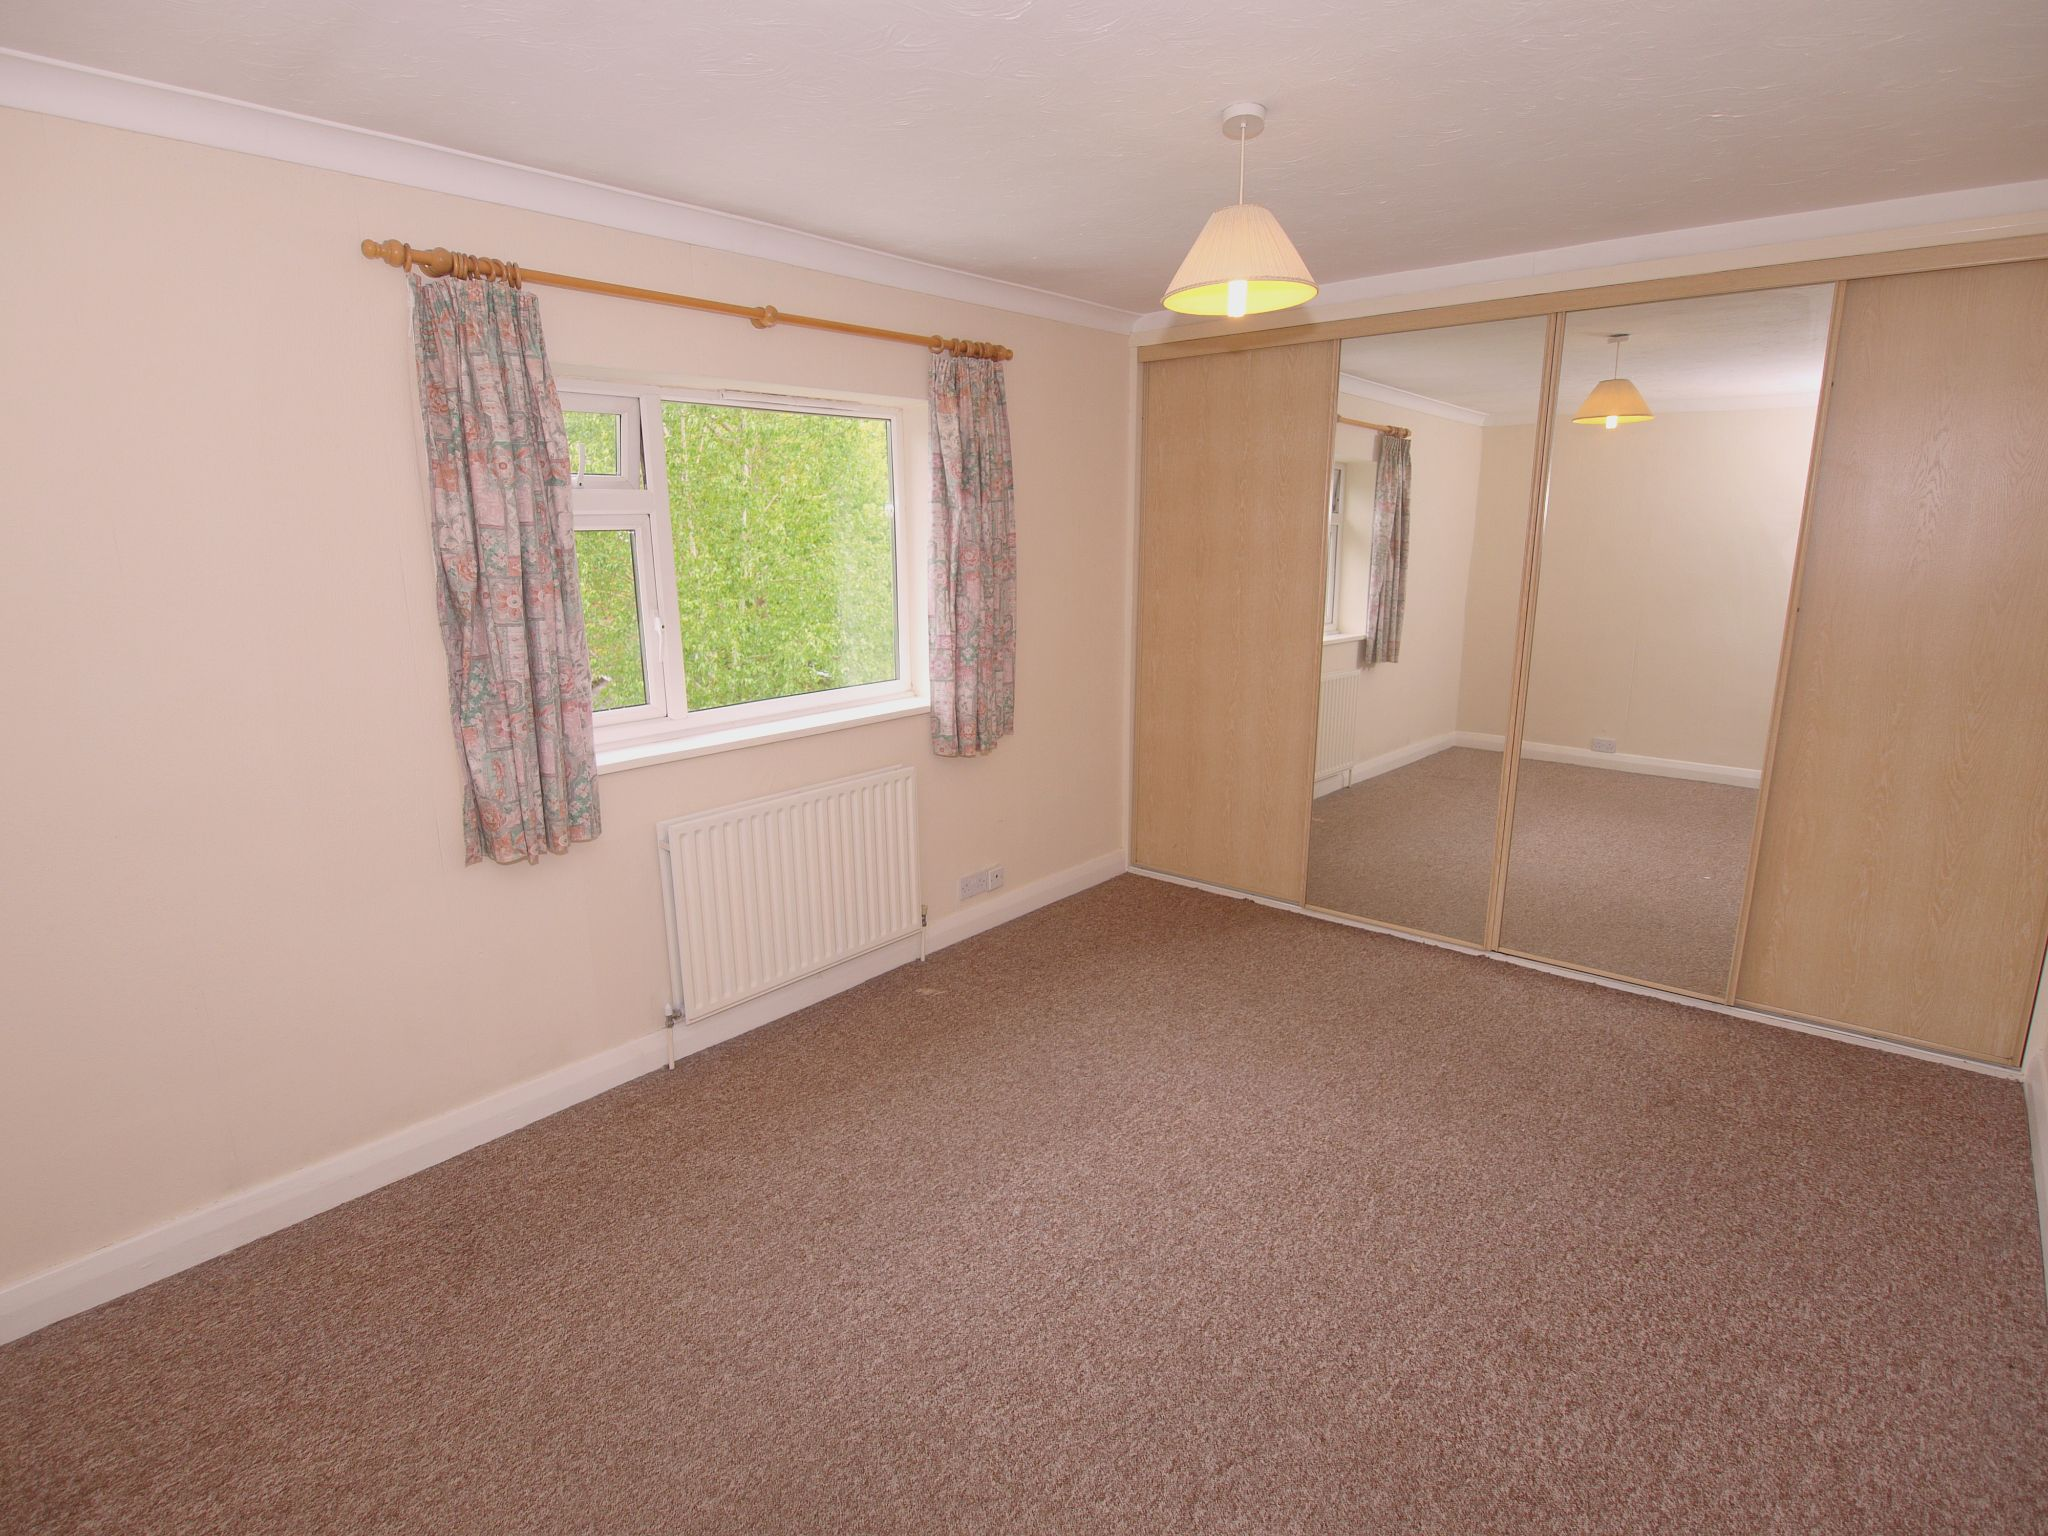 2 bedroom apartment flat/apartment Sale Agreed in Sevenoaks - Photograph 4